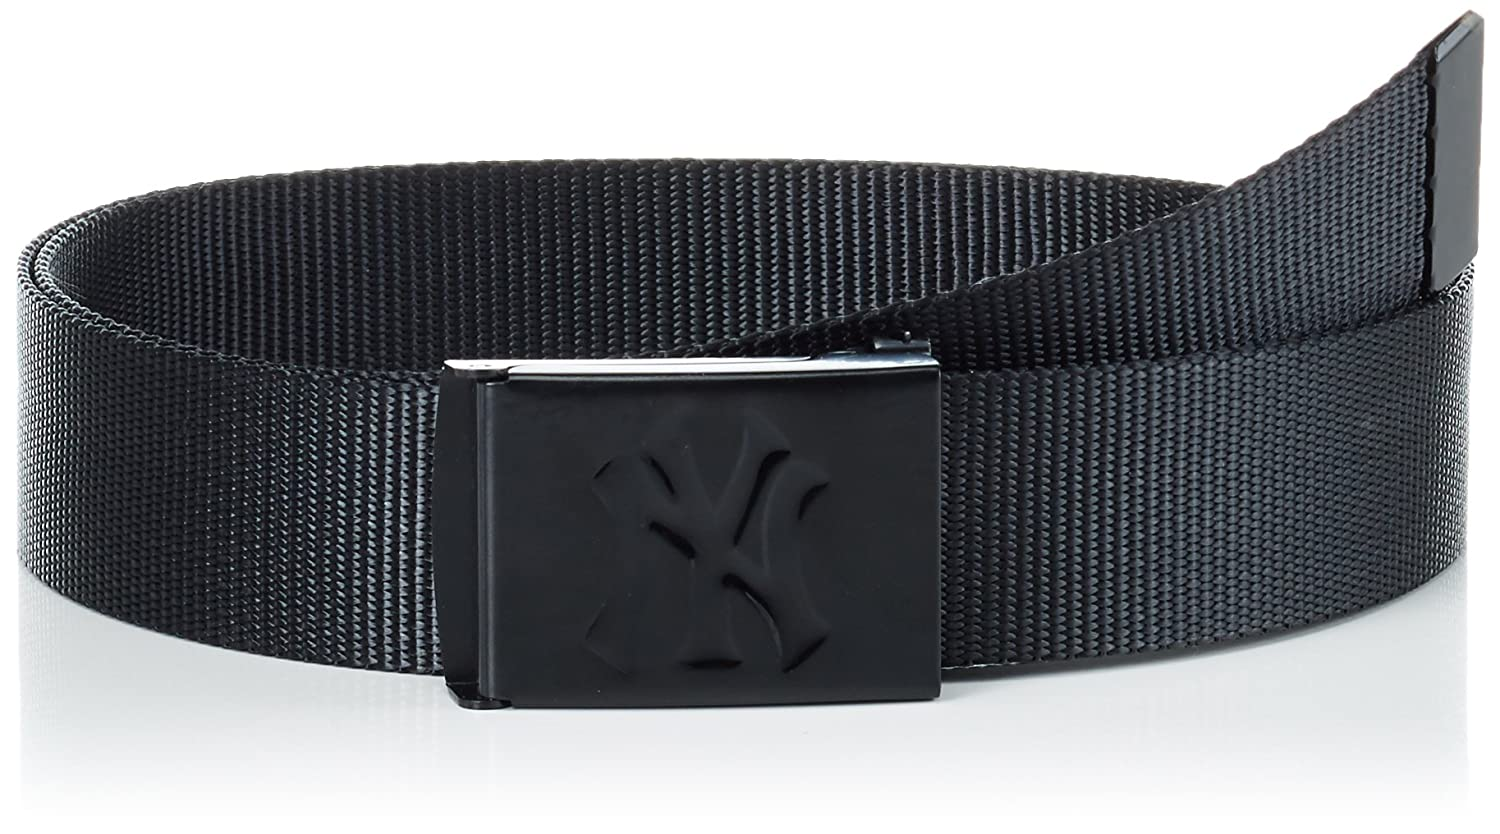 iron belt single guys The new iron bull strength's power lifting belt has been carefully designed to maximize performance, durability, safety and comfort the 10mm thickness provides the best support and comfort a power belt can offer.